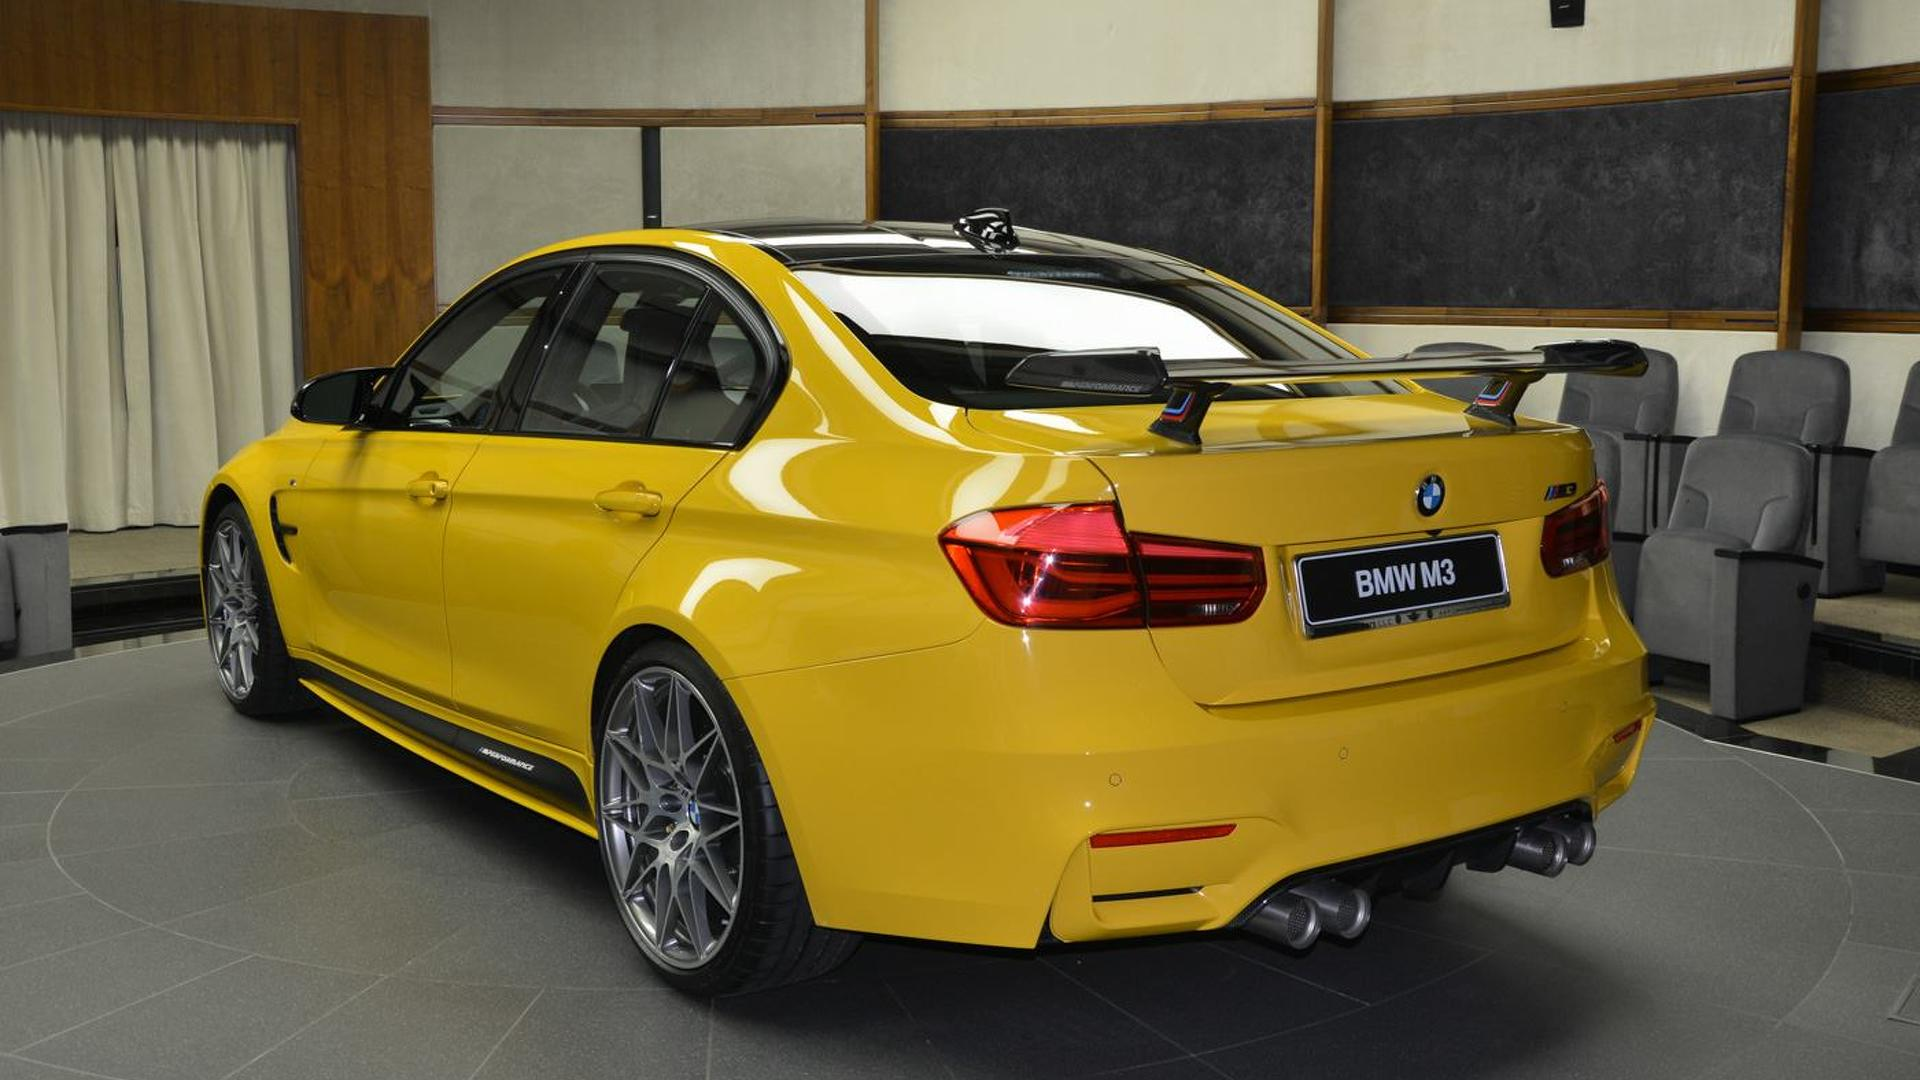 BMW_M3_Speed_Yellow_06